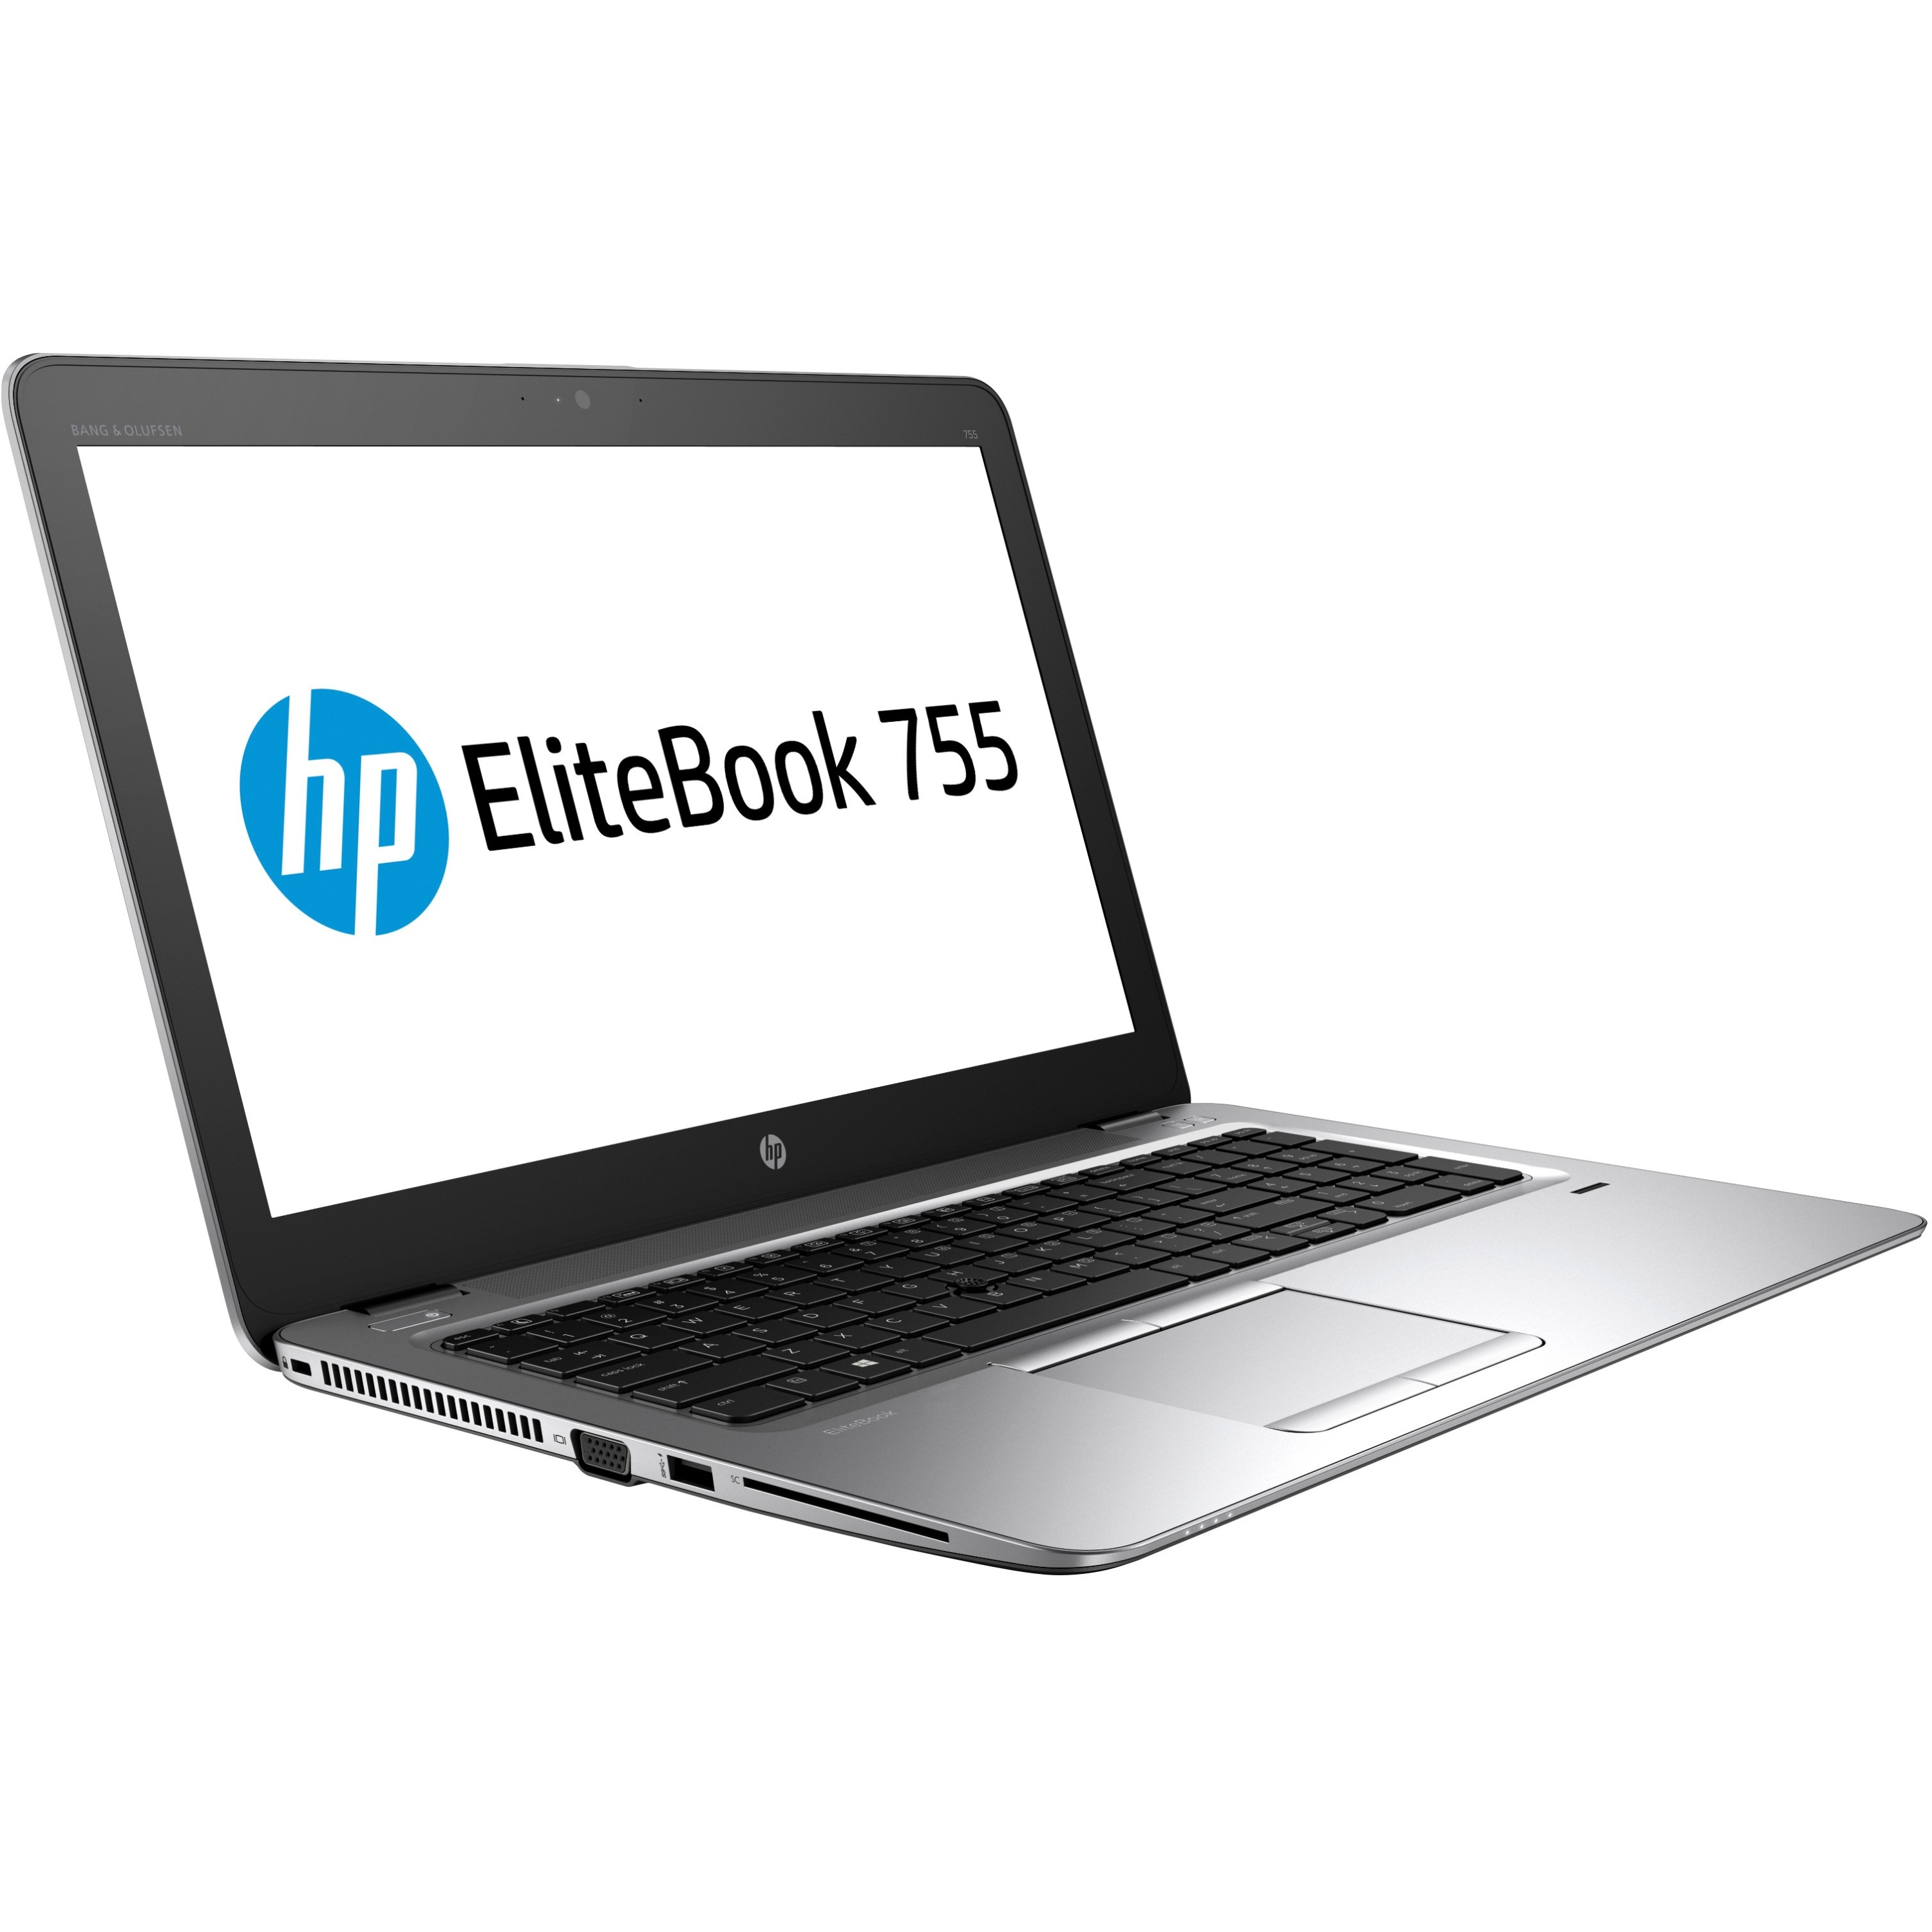 "HP EliteBook 755 G3 15.6"" Notebook w/ AMD A12-8800B, 8GB RAM, & 256GB SSD"